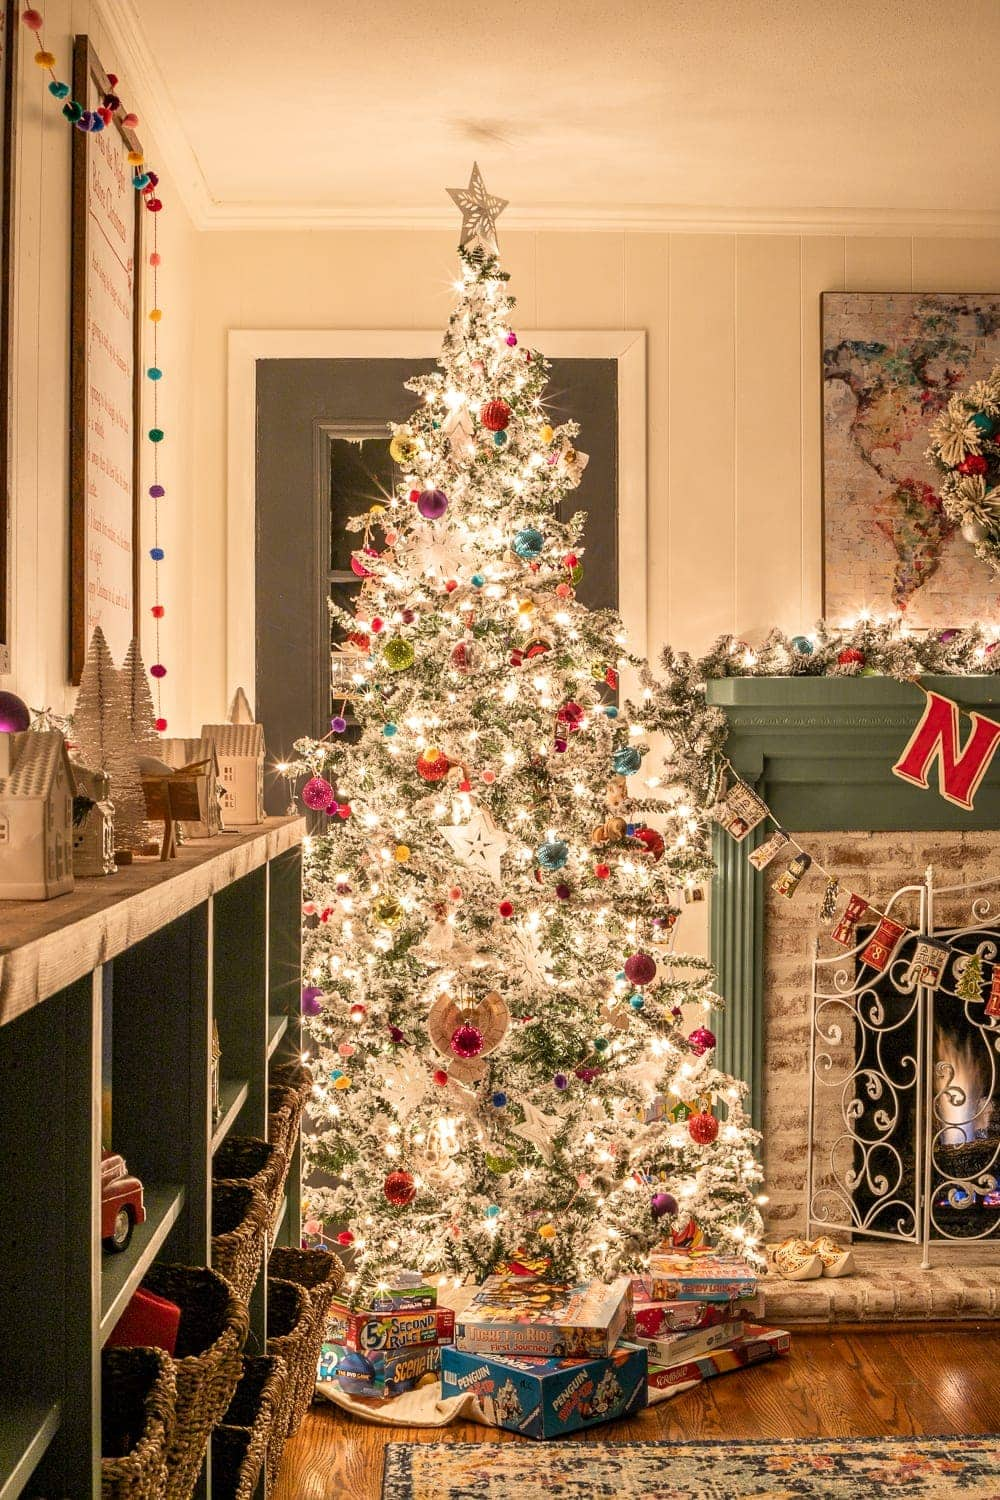 Christmas playroom tree at night